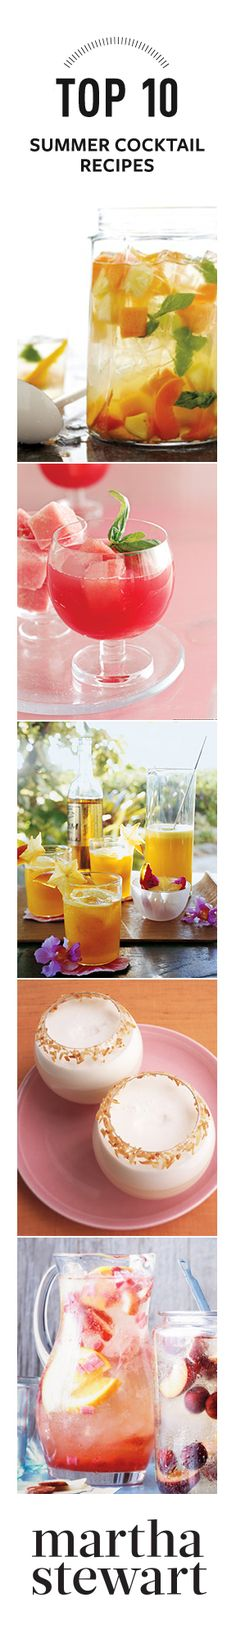 Top 10 Summer Cocktail Recipes from Martha Stewart #beach #summer #cocktail for the #beach #drinks #refreshing